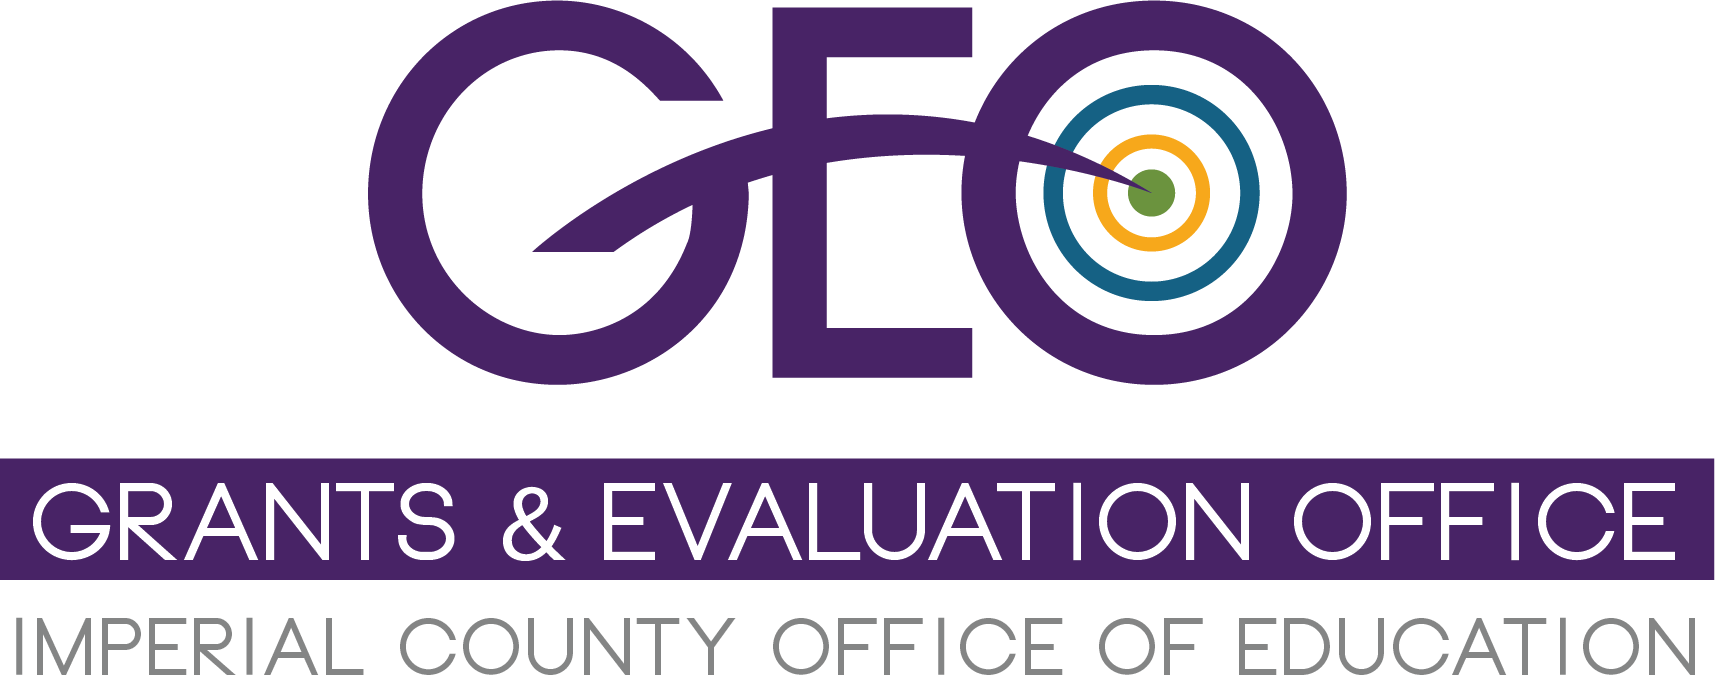 Grants & Evaluation Office | Imperial County Office of Education